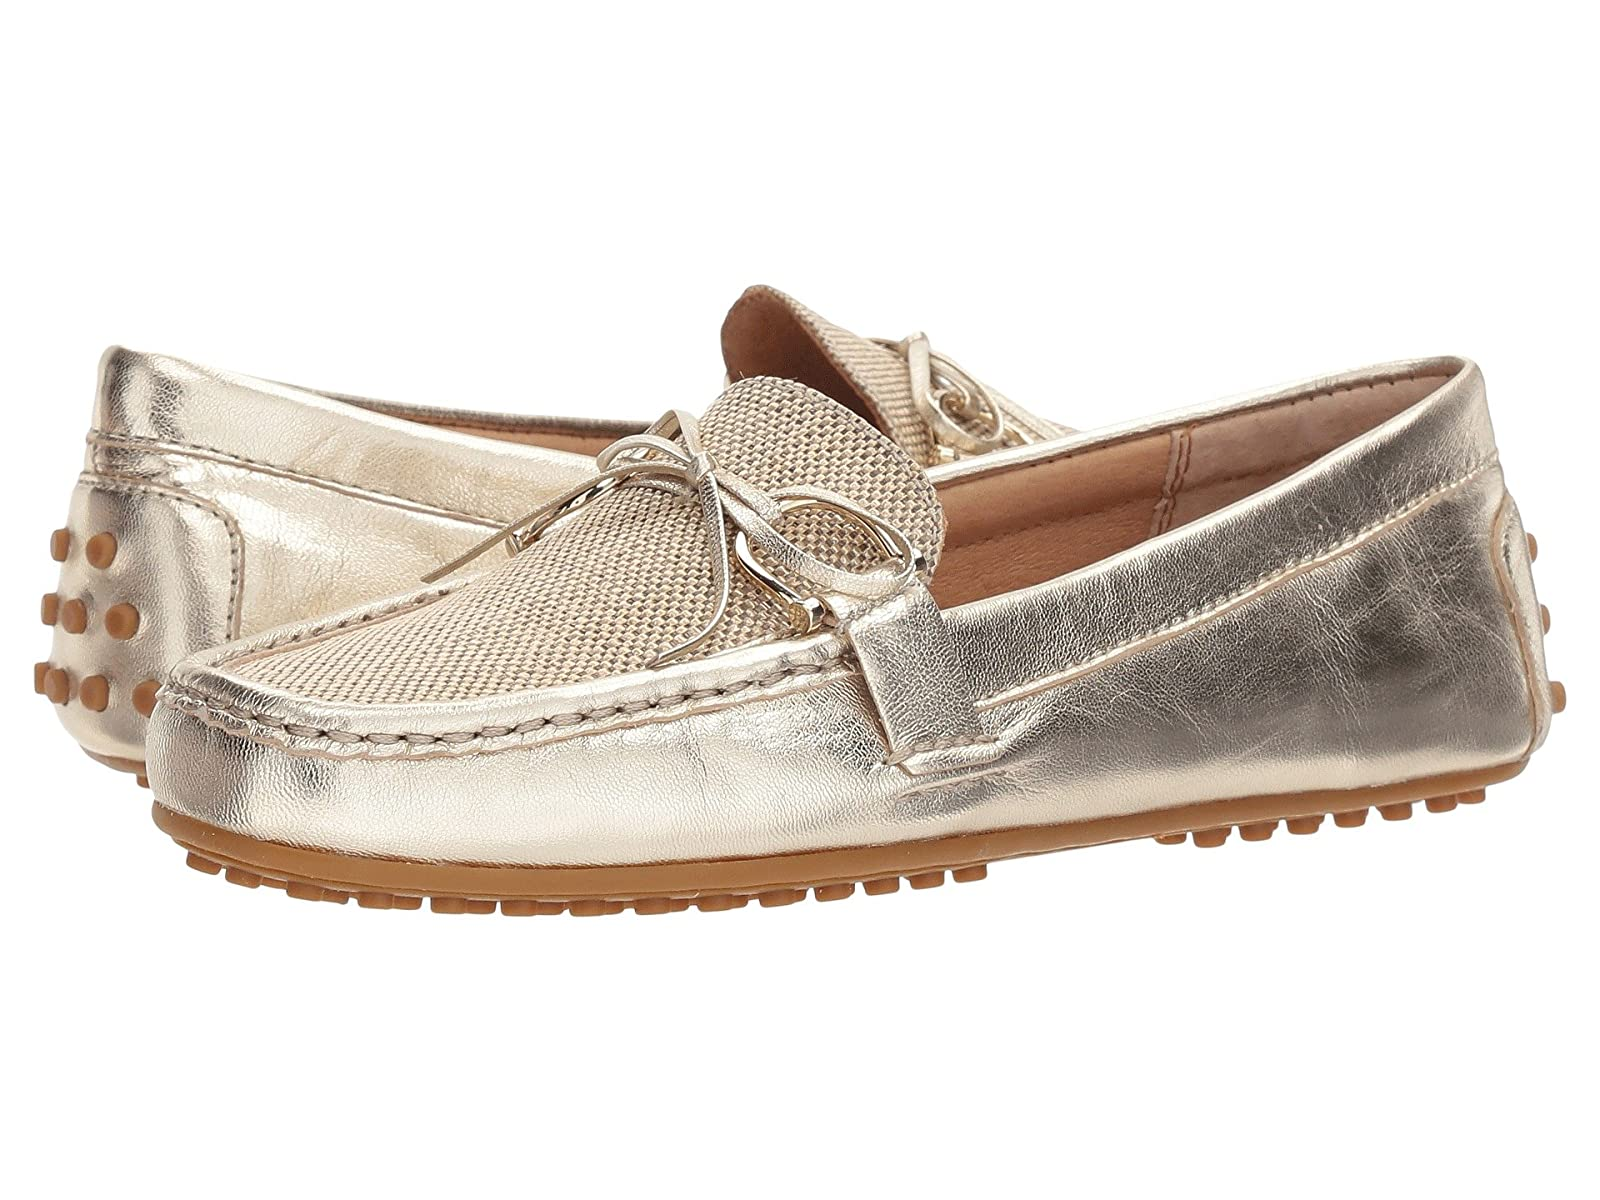 LAUREN Ralph Lauren Briley Moccasin LoaferCheap and distinctive eye-catching shoes